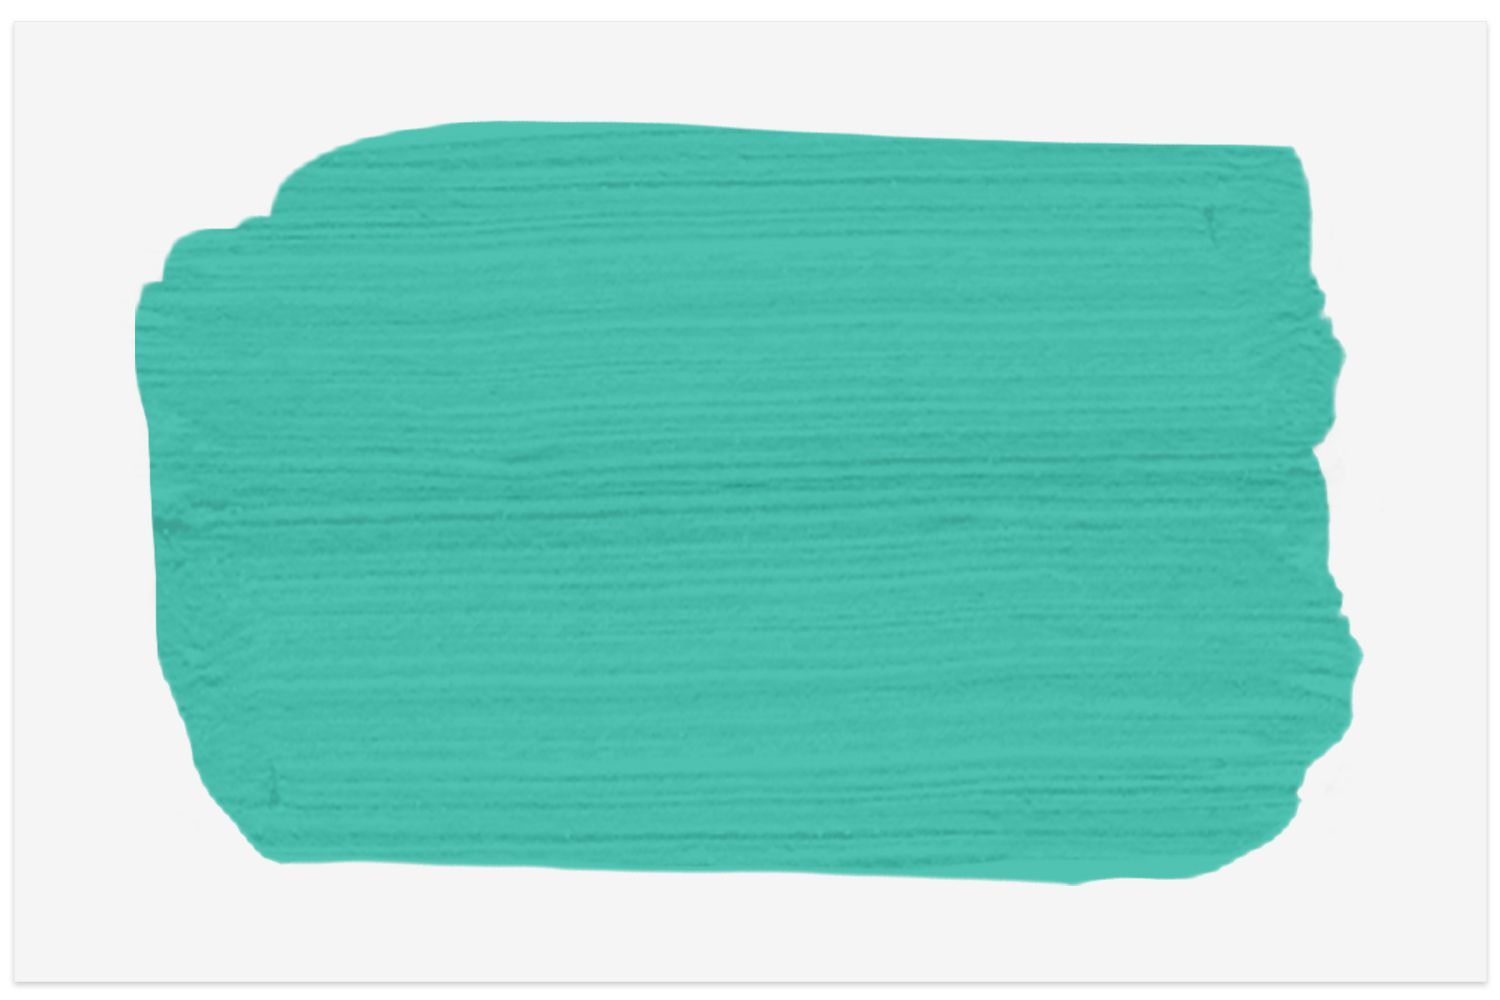 Miami Teal paint swatch from Benjamin Moore